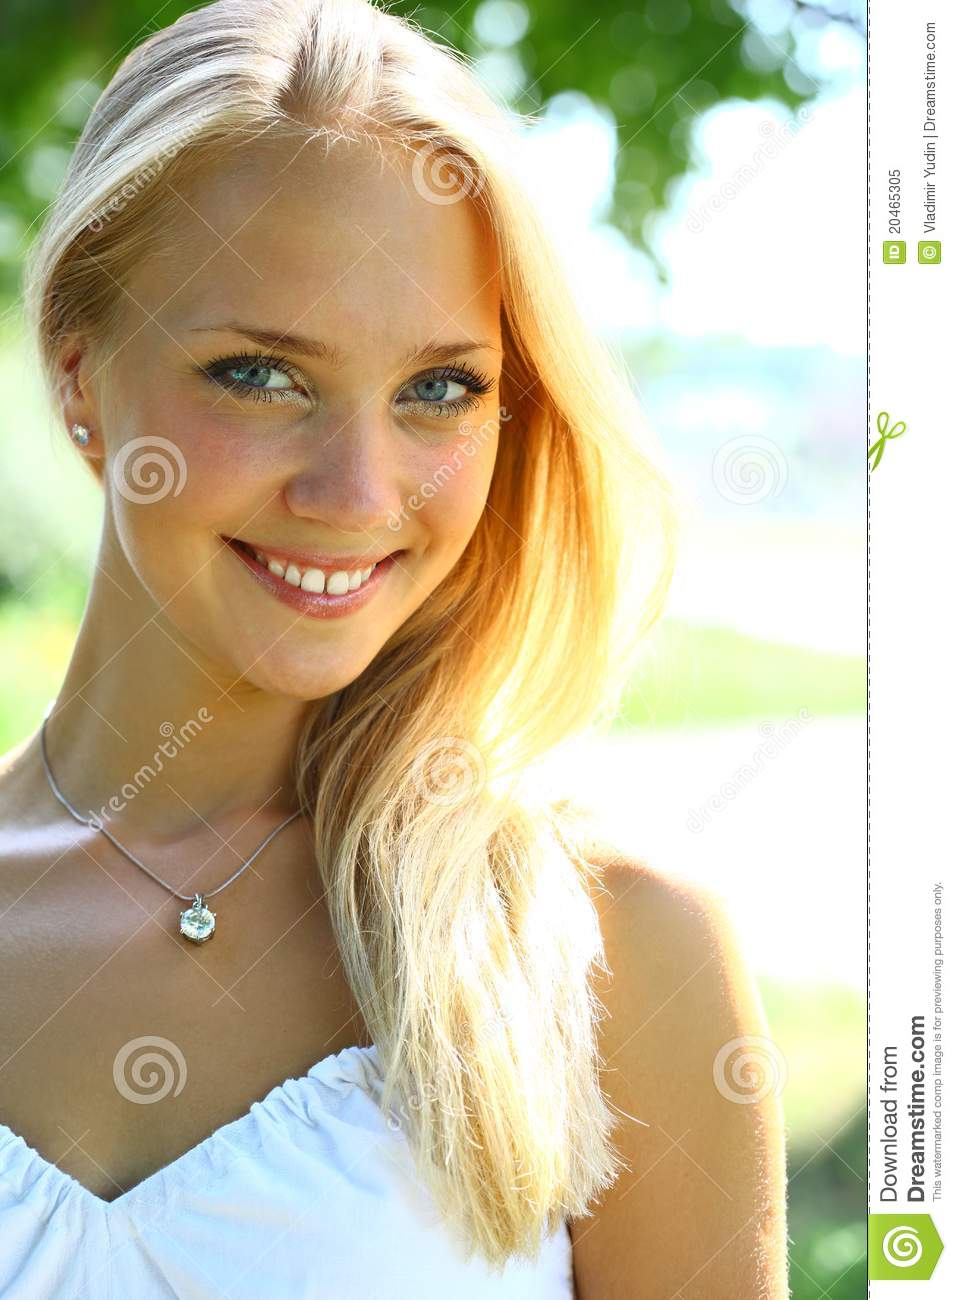 blonde frauen bilder